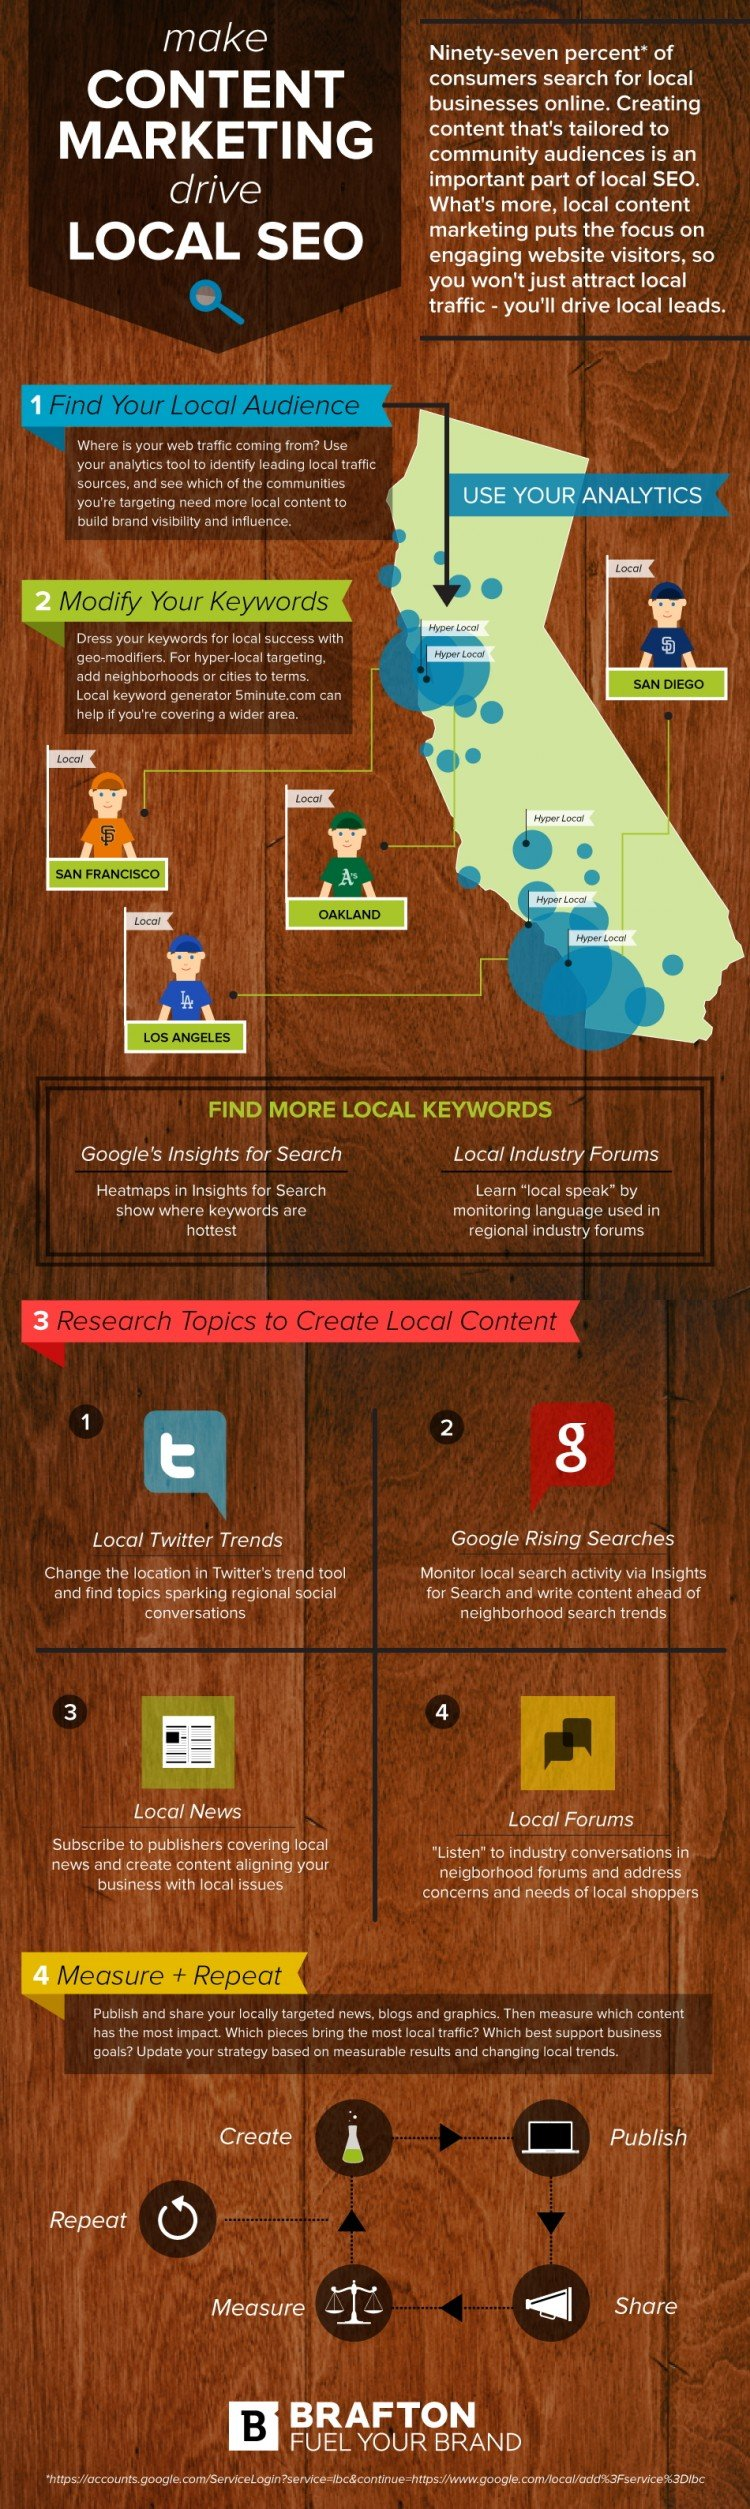 Make Content Marketing Drive Local SEO